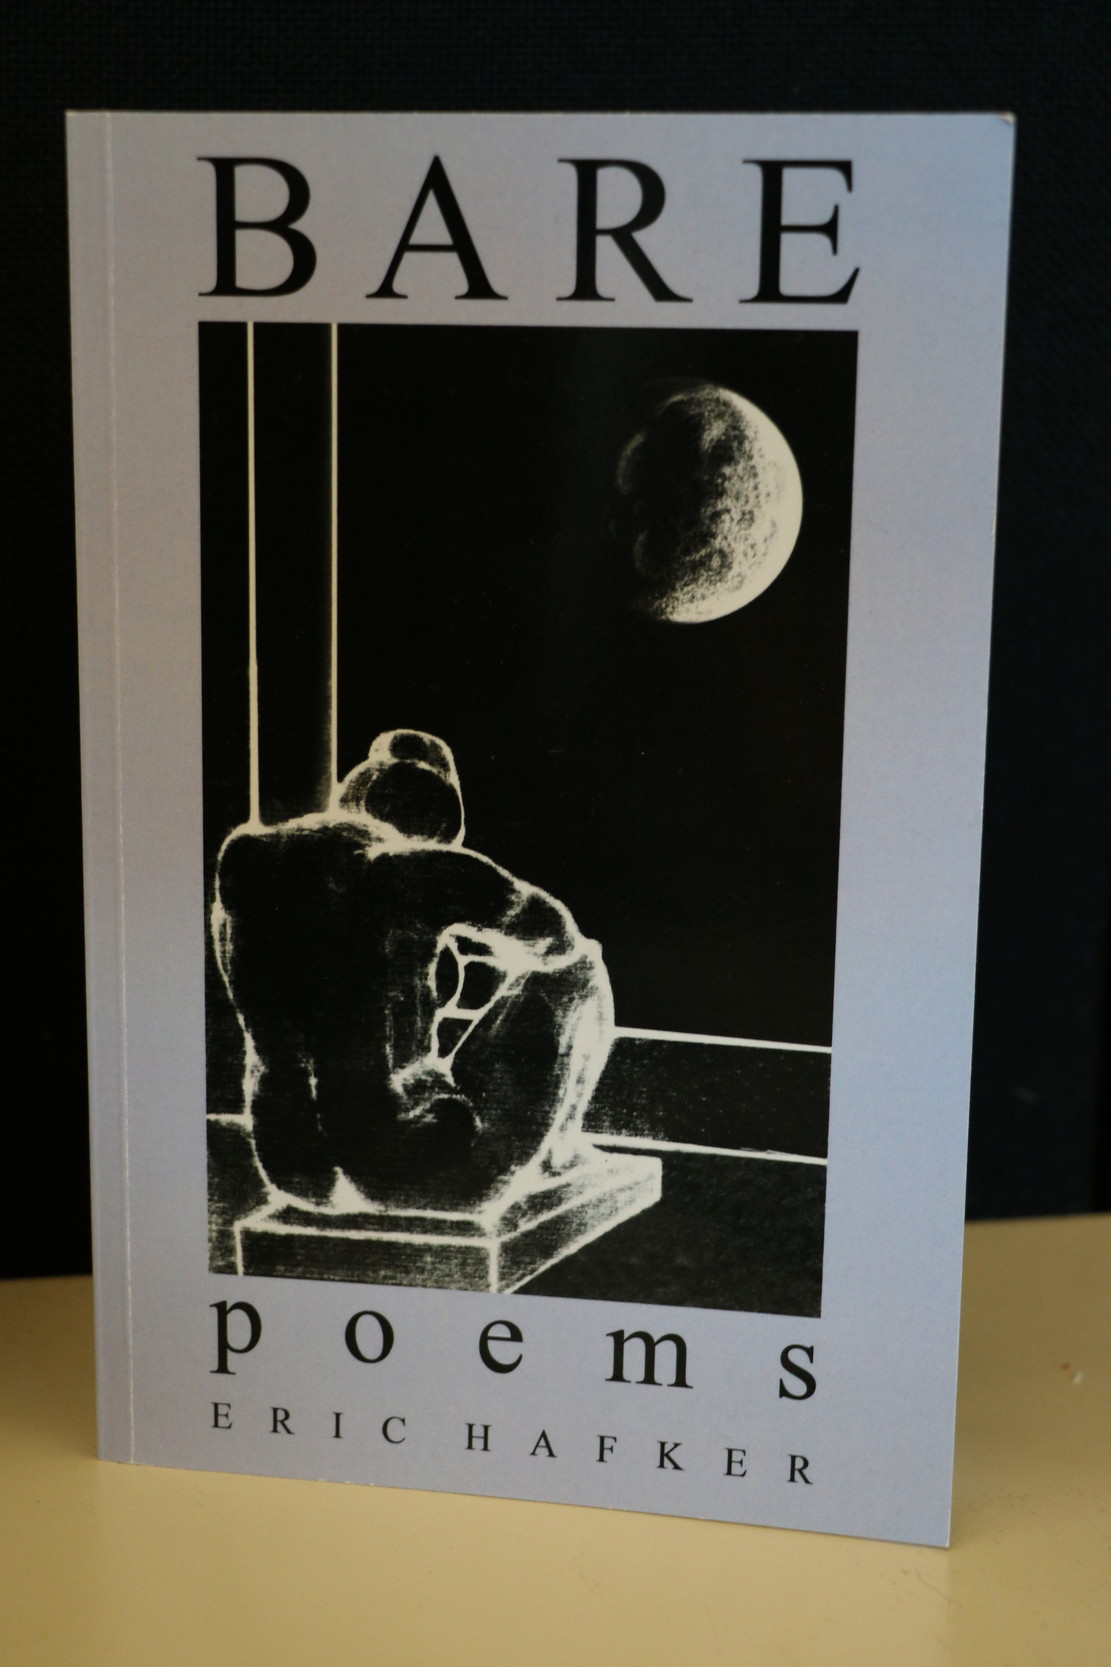 Malvernite Eric Hafker re-released his book of poetry in May.